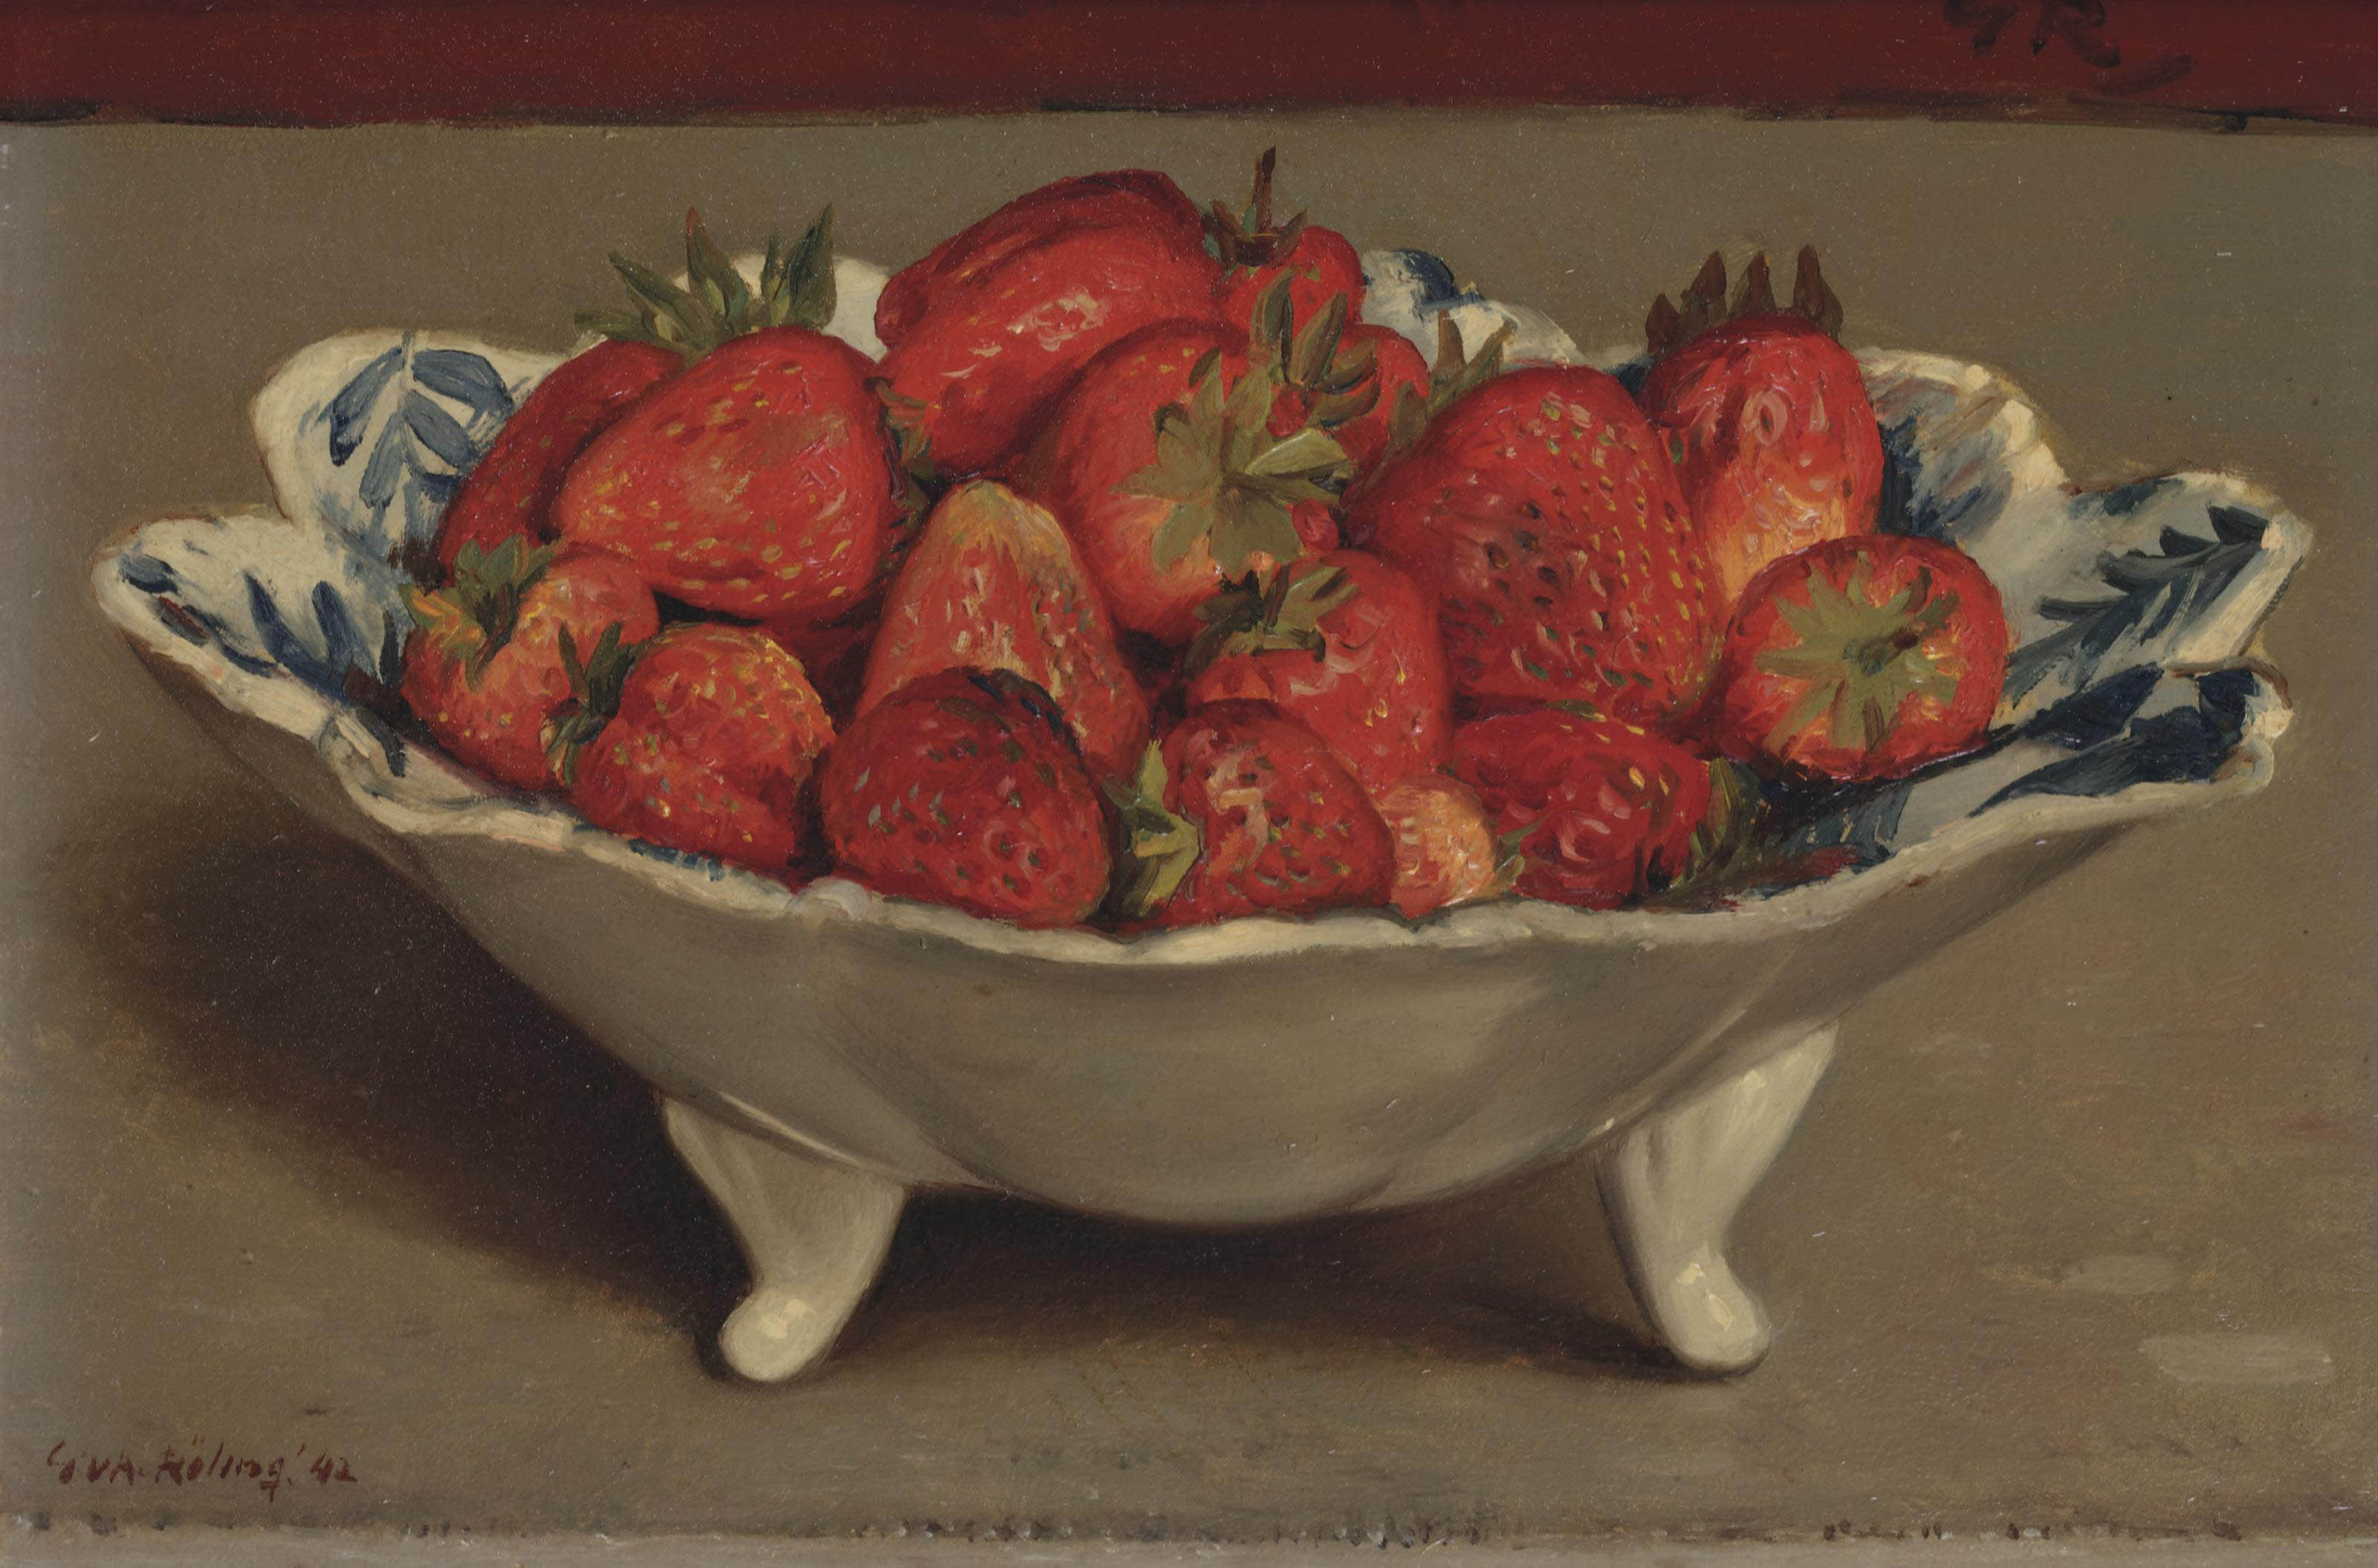 A still life with strawberries